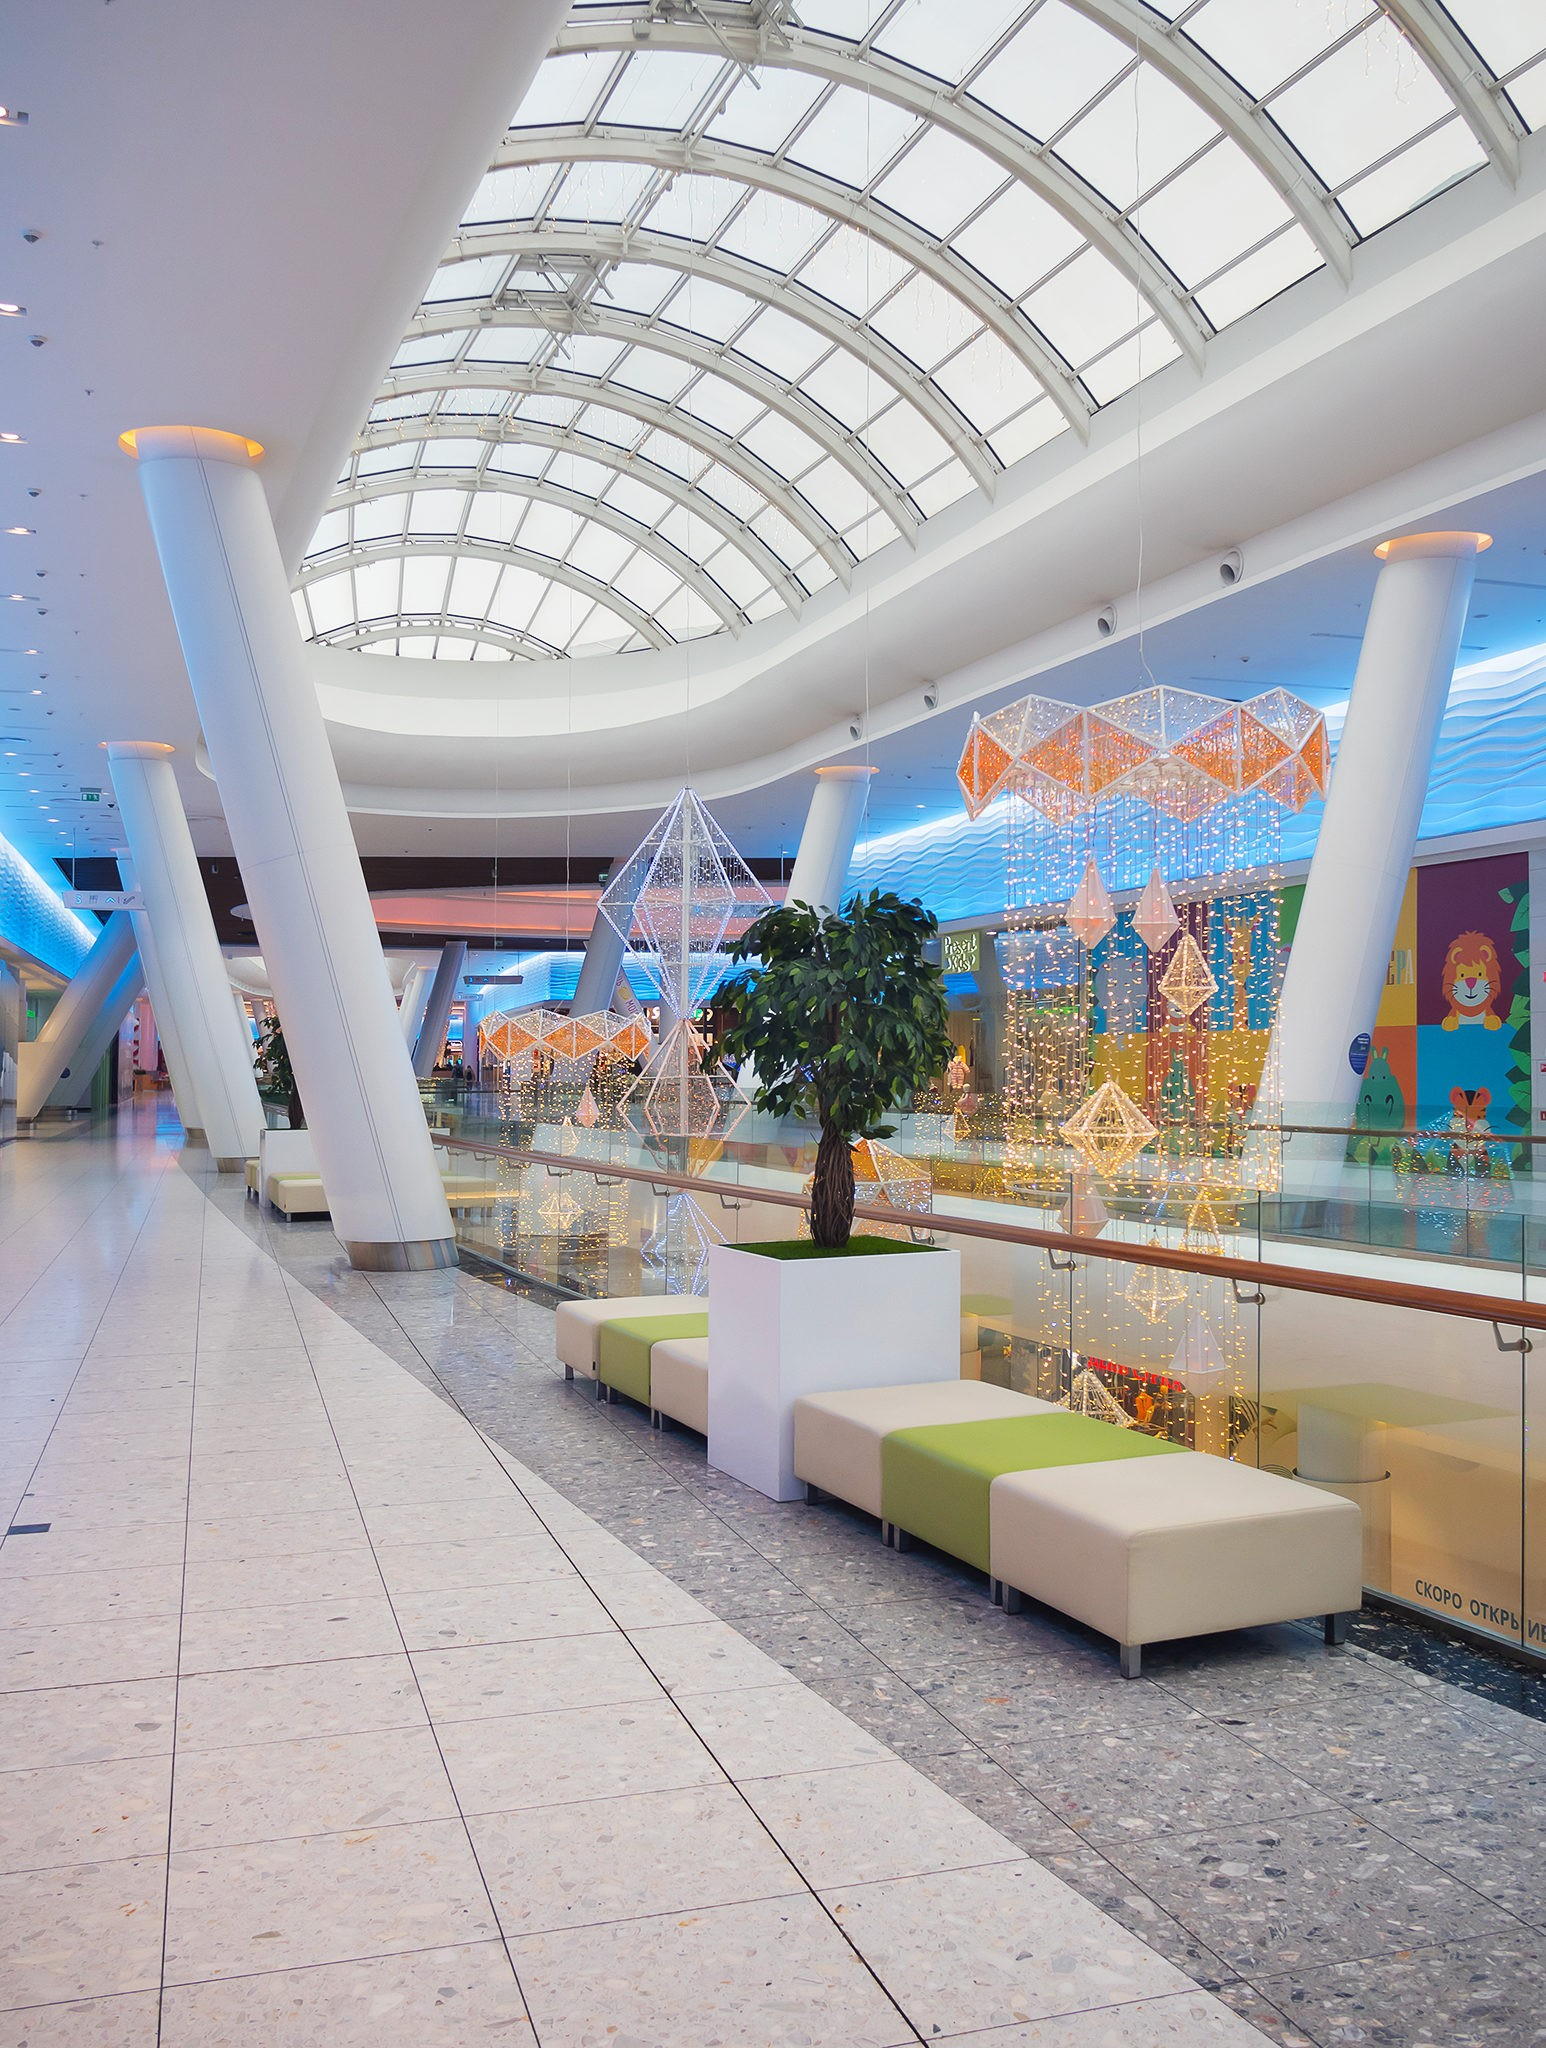 Interiors and architecture of the shopping mall